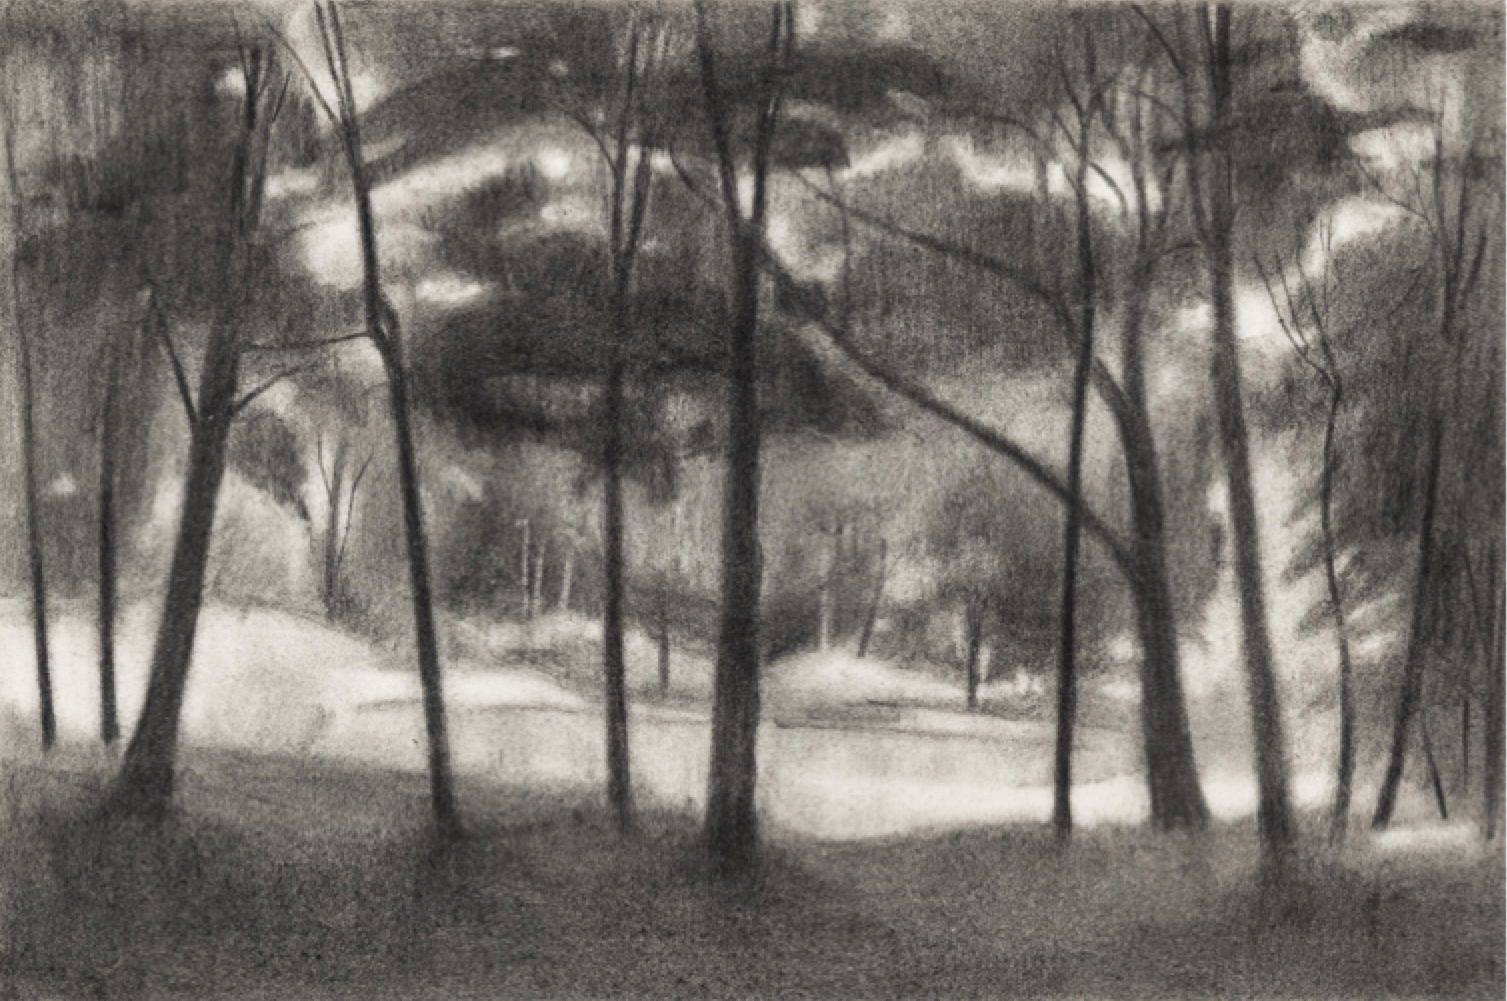 Ron Milewicz, Trees and Pond, 2018, pencil on paper, 12 x 18 inches